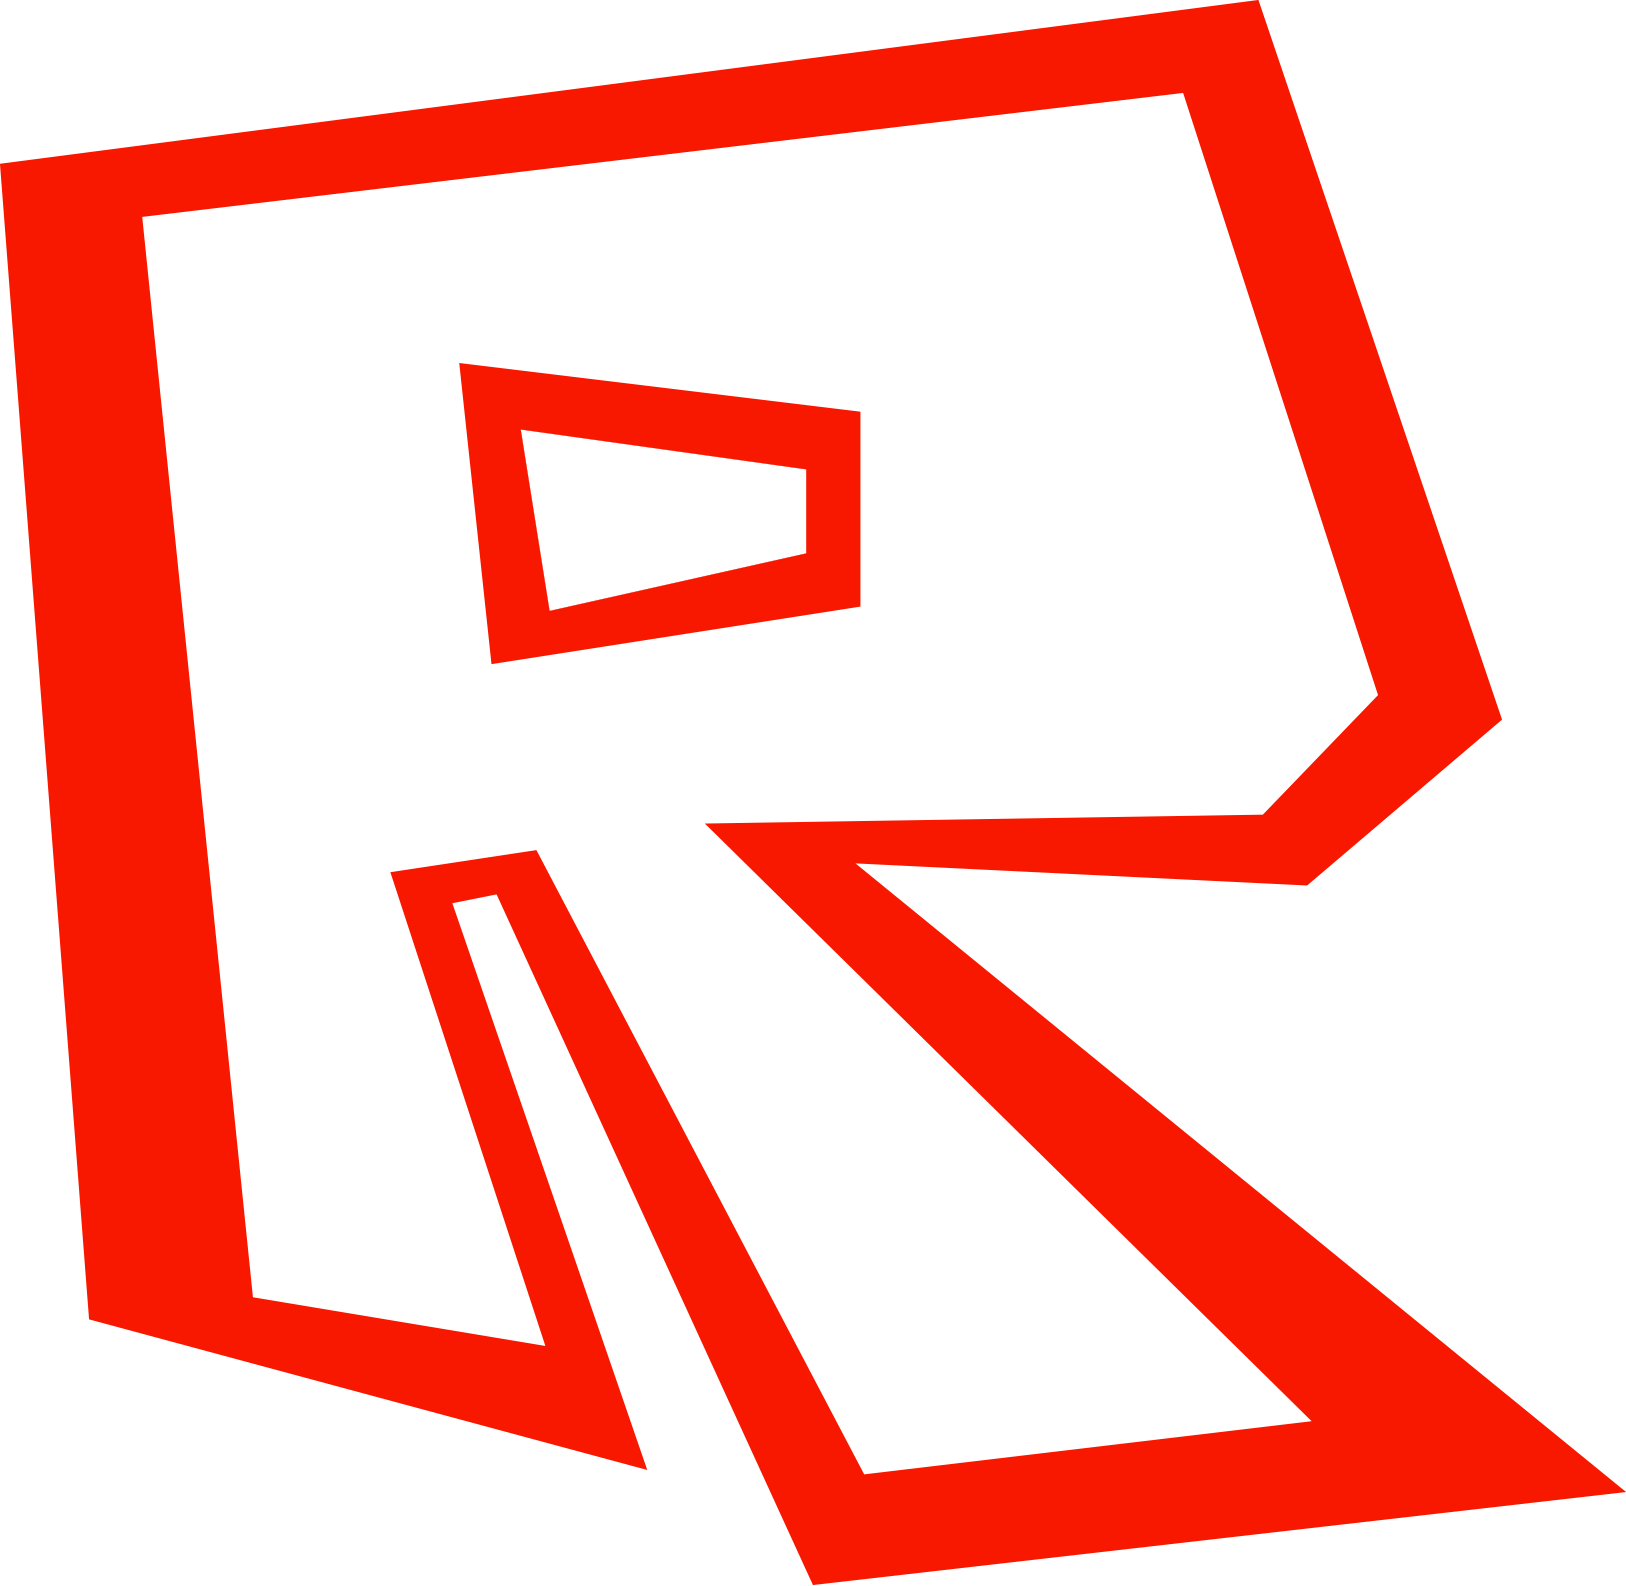 Roblox R Vector 491149572 on Drawing Page